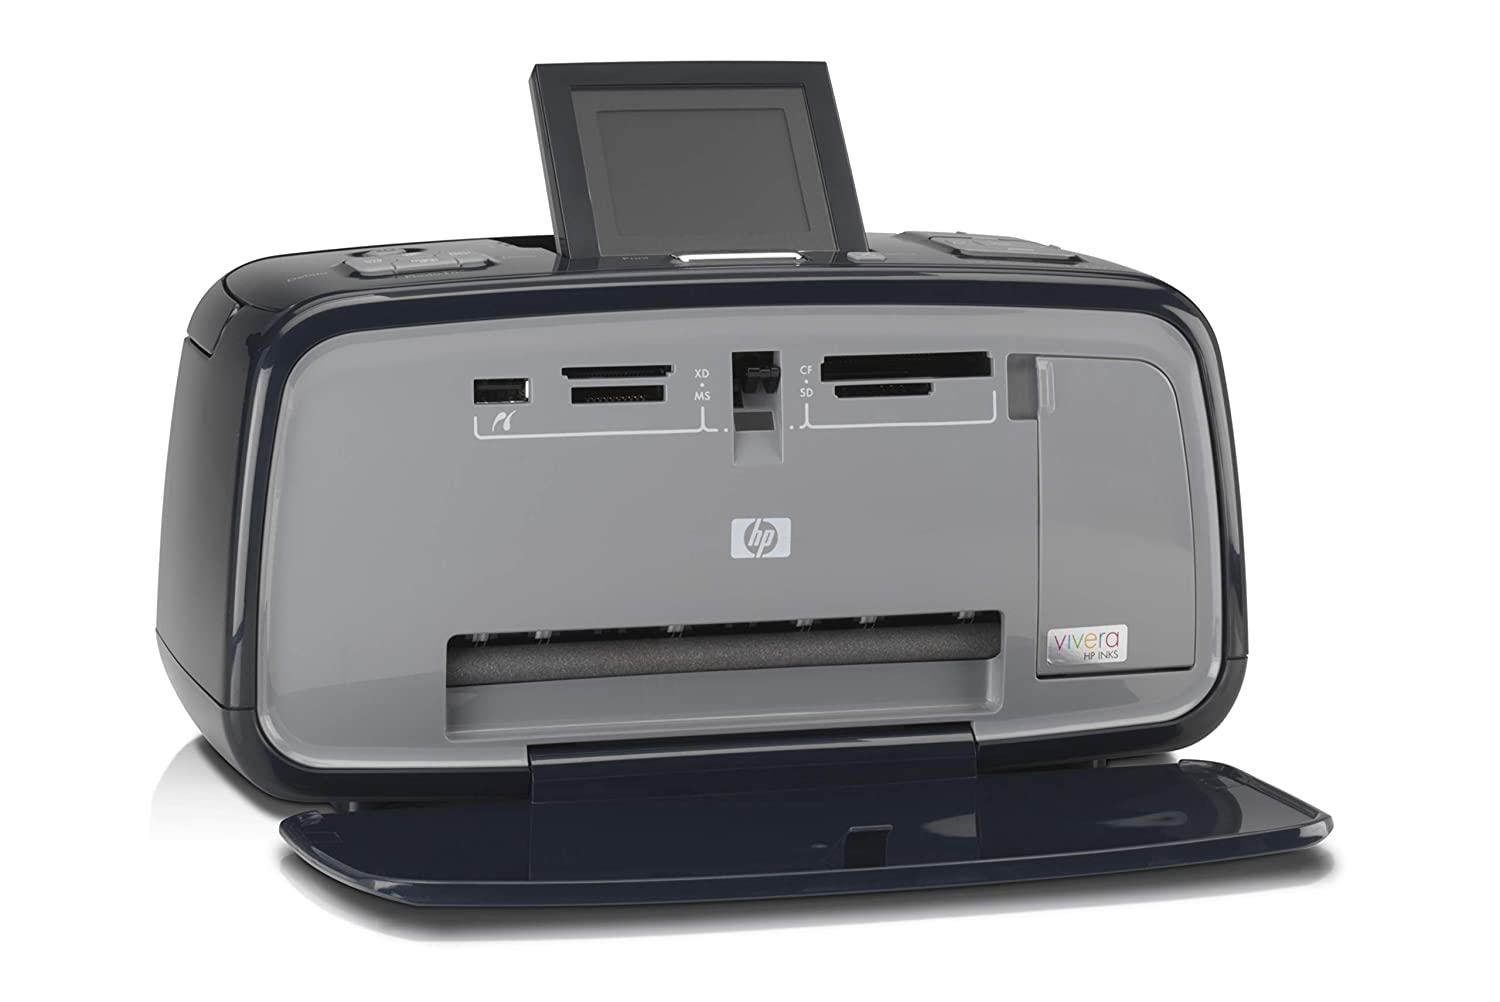 Amazon.com: HP Photosmart A617 Compact Photo Printer: Camera ...